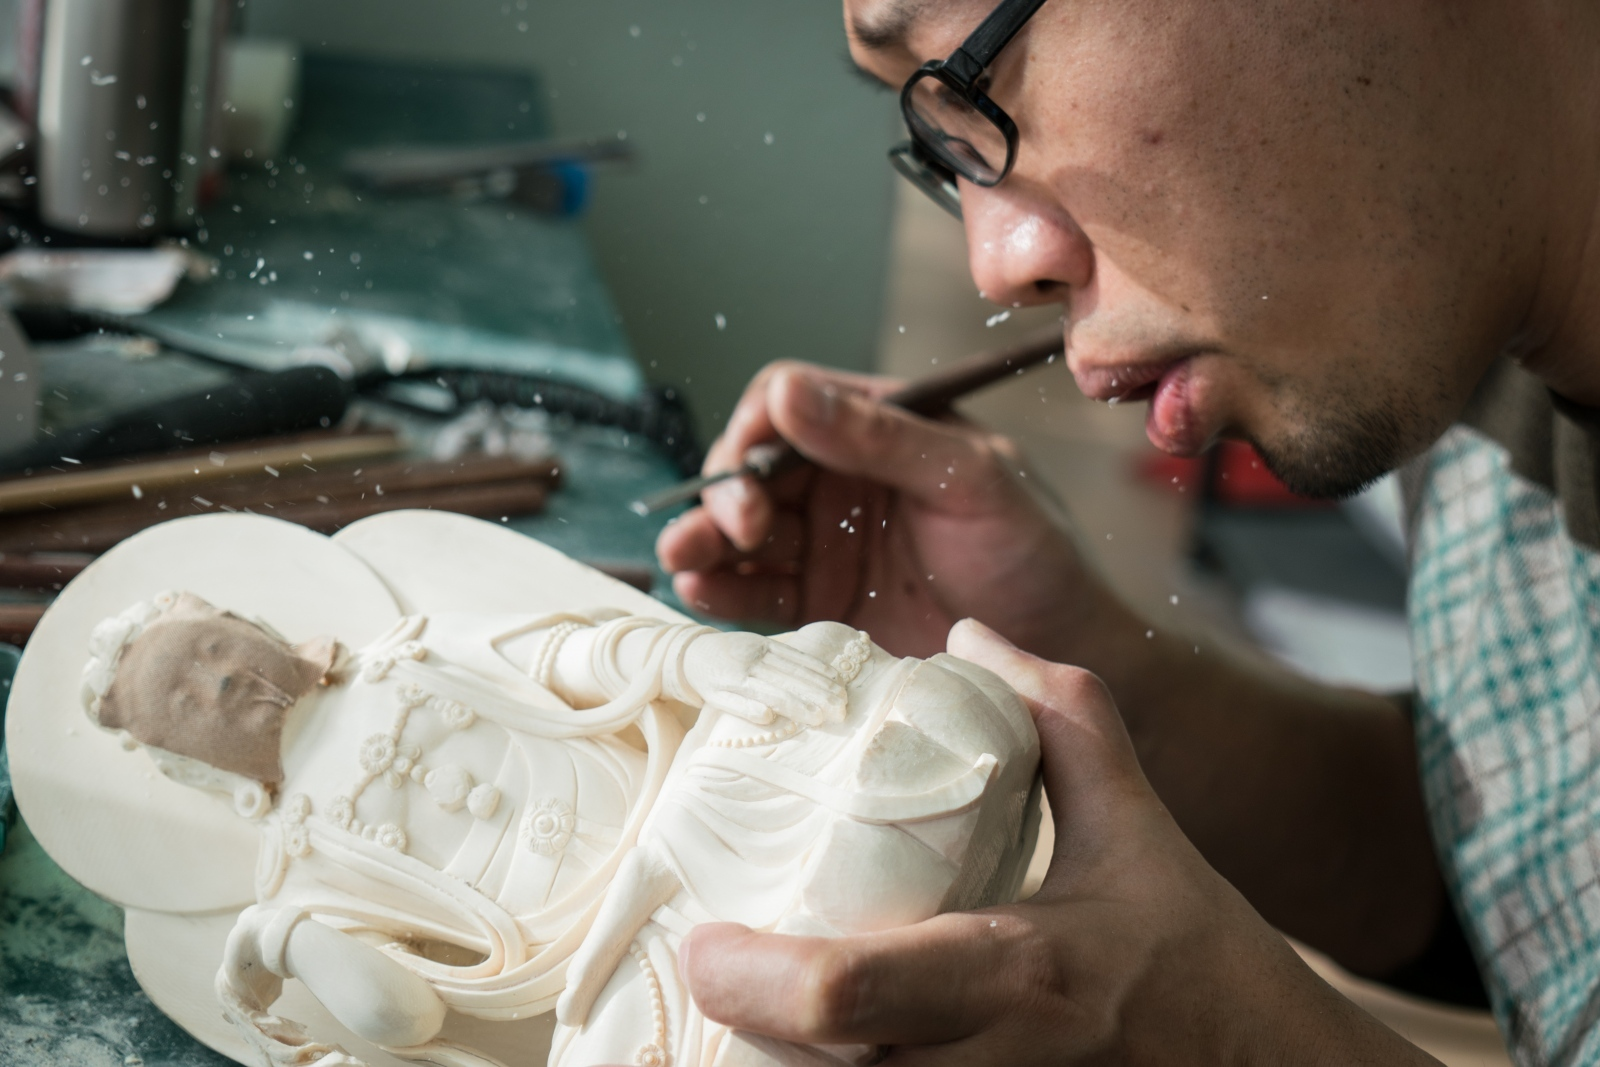 Ivory dust flies as Zhang Yong blows it away at an ivory carving workshop in Beijing, China on December 10, 2017. Read story